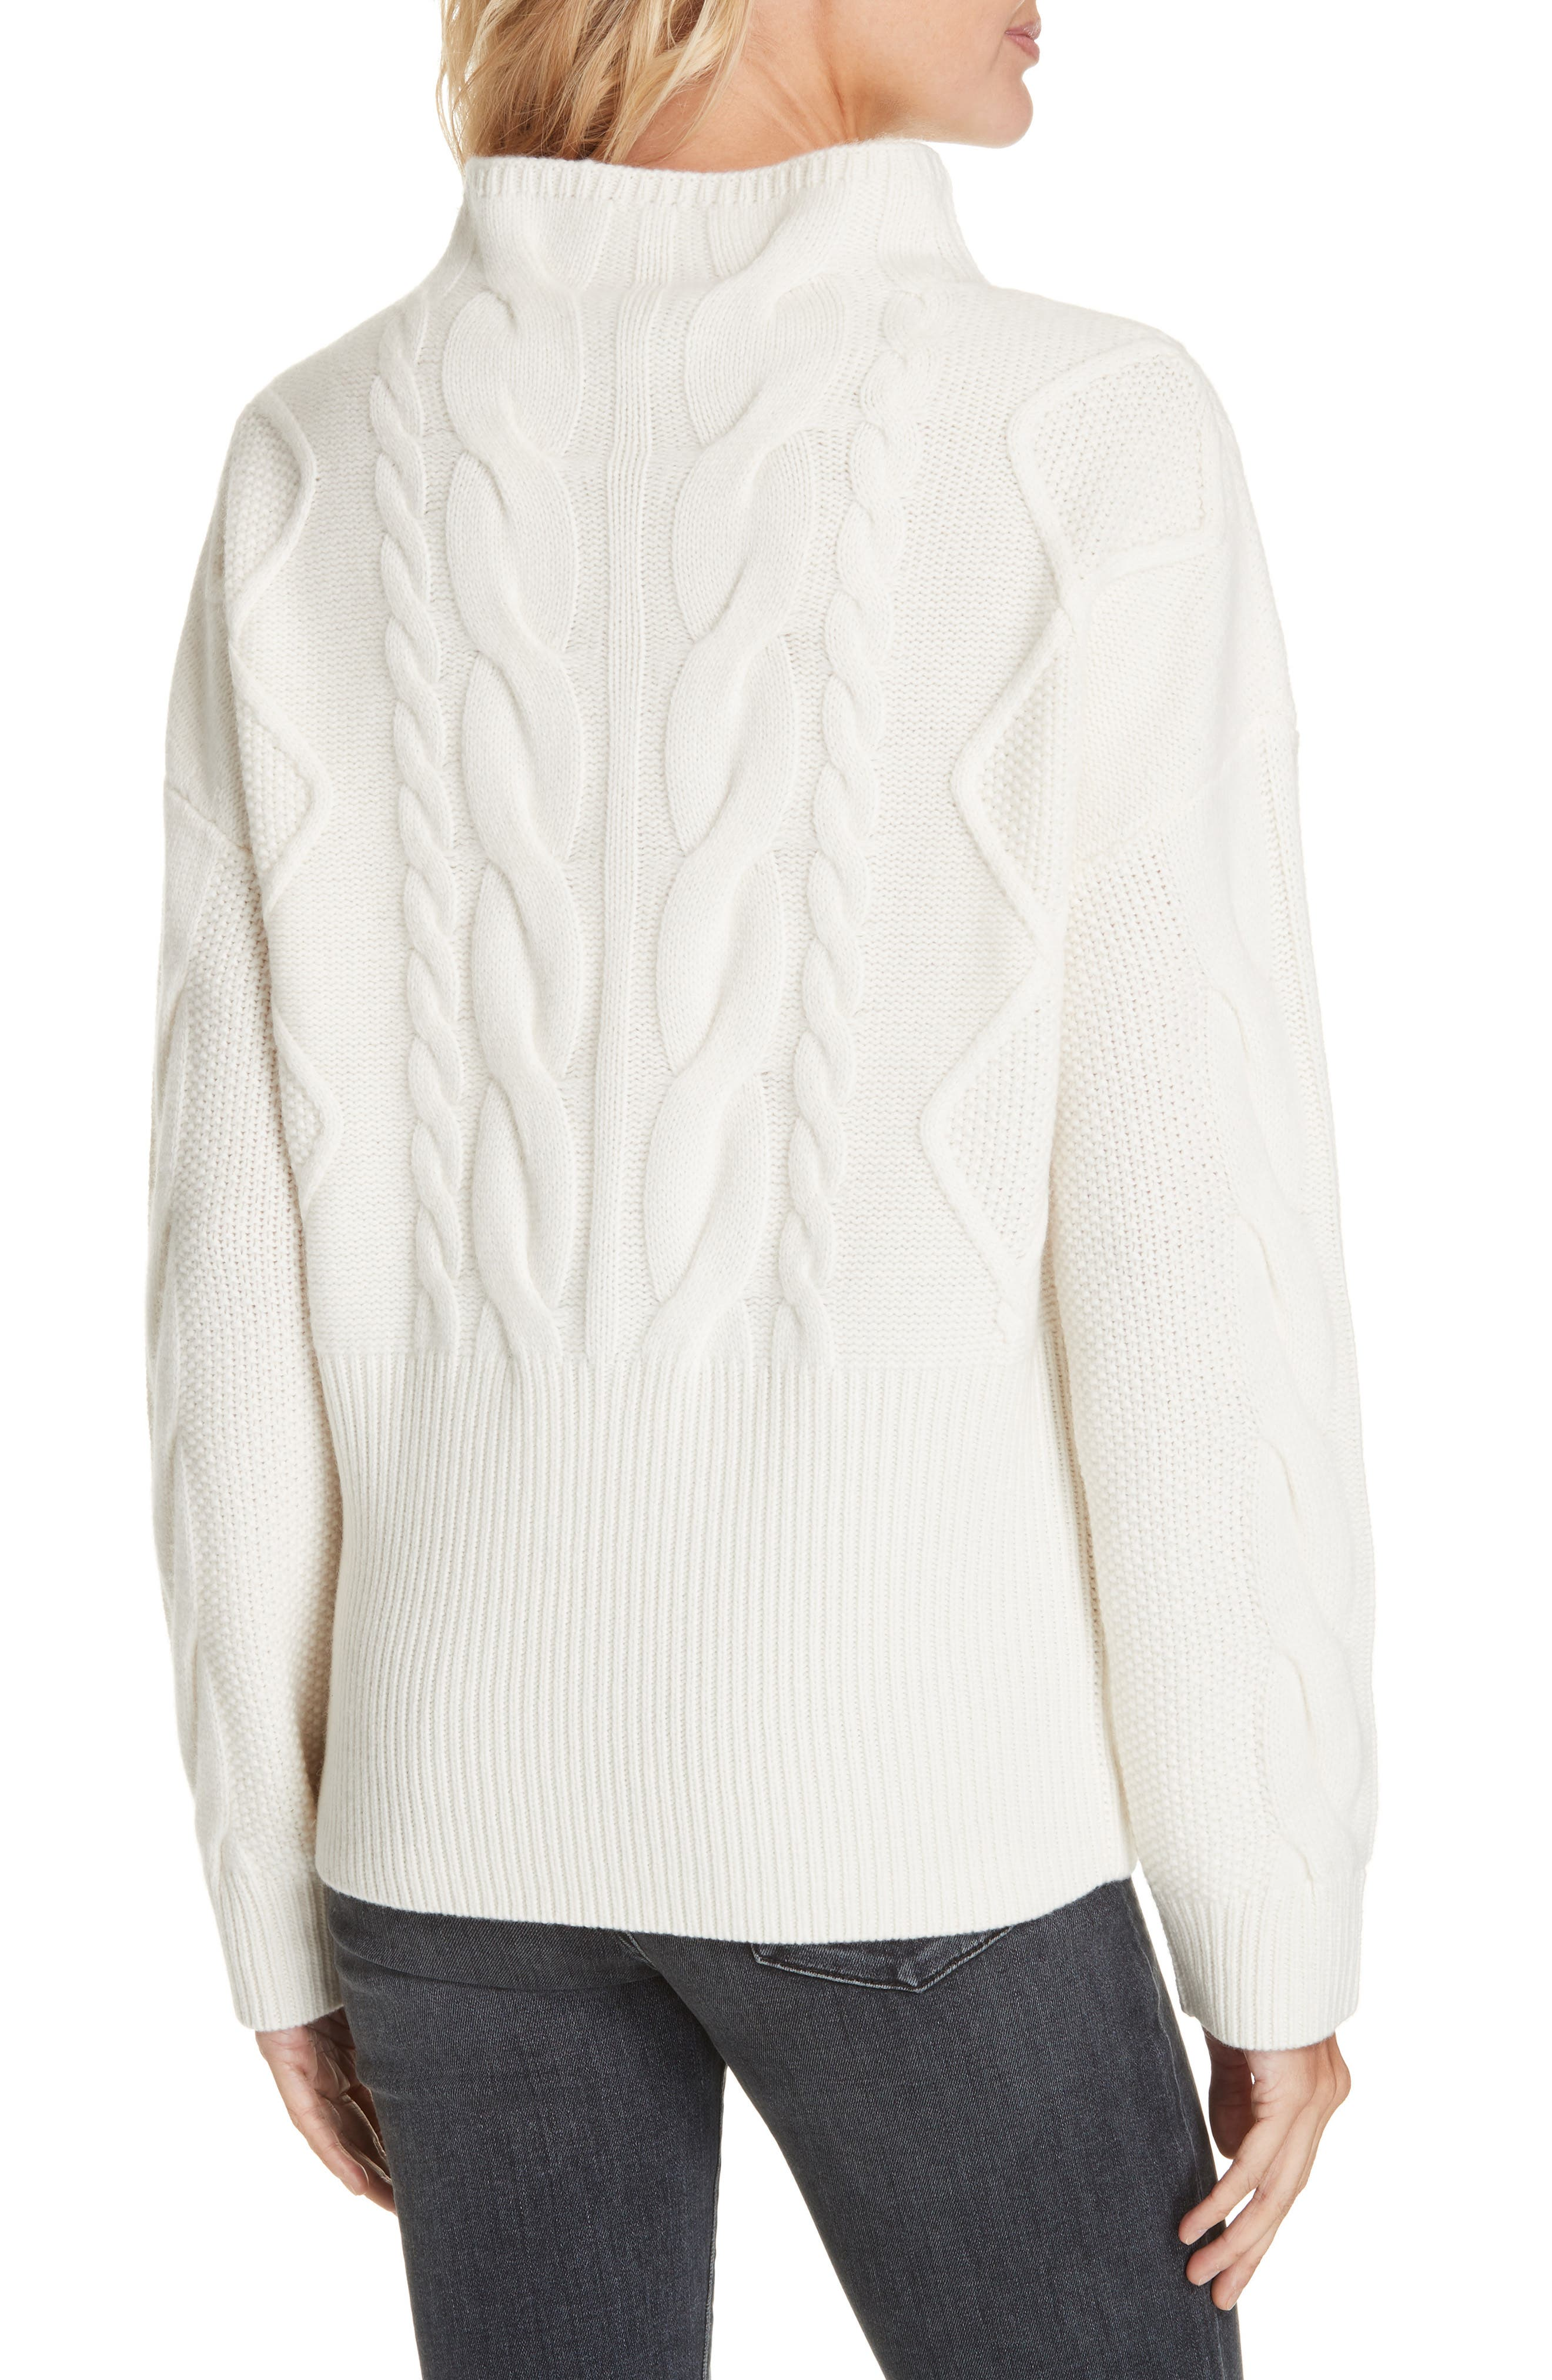 NORDSTROM SIGNATURE, Cable Cashmere Sweater, Alternate thumbnail 2, color, 900